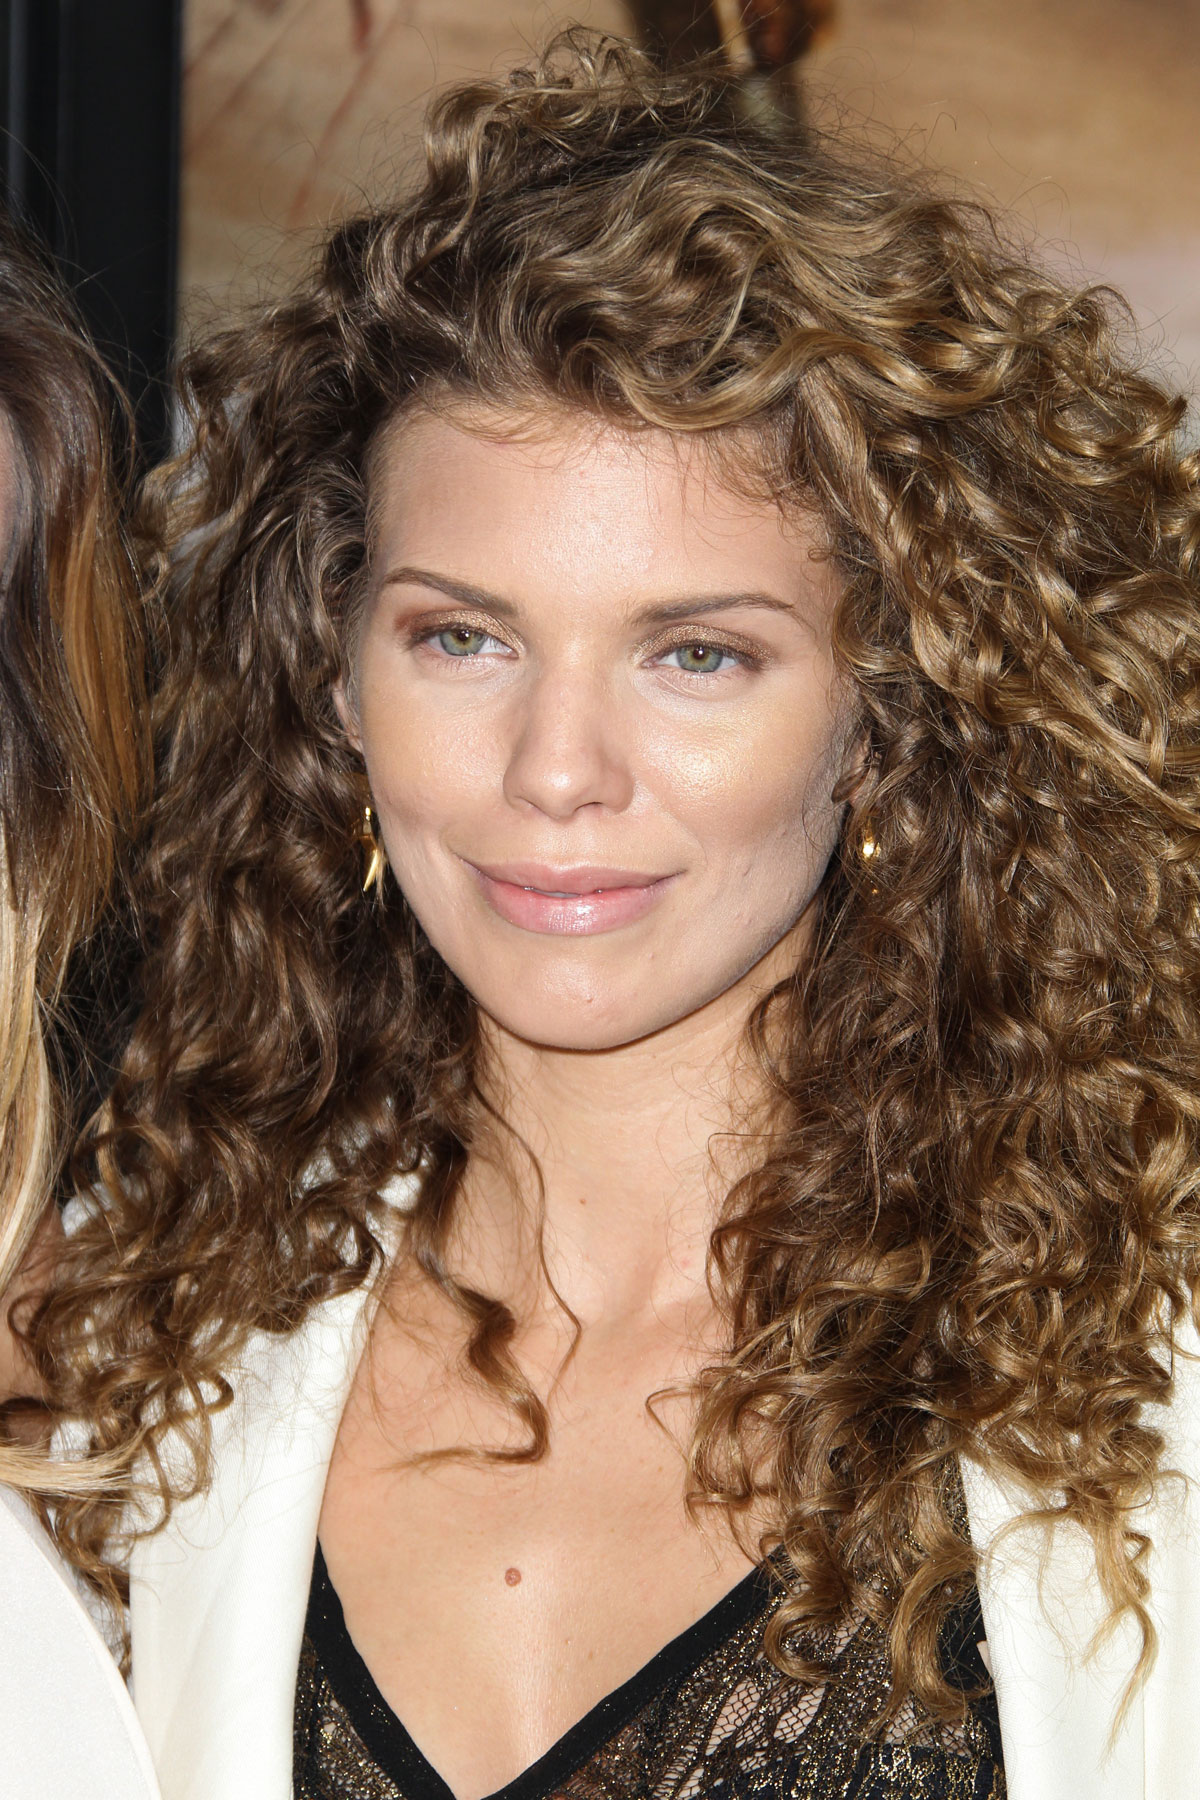 Photos AnnaLynne McCord nudes (61 foto and video), Tits, Hot, Selfie, bra 2019